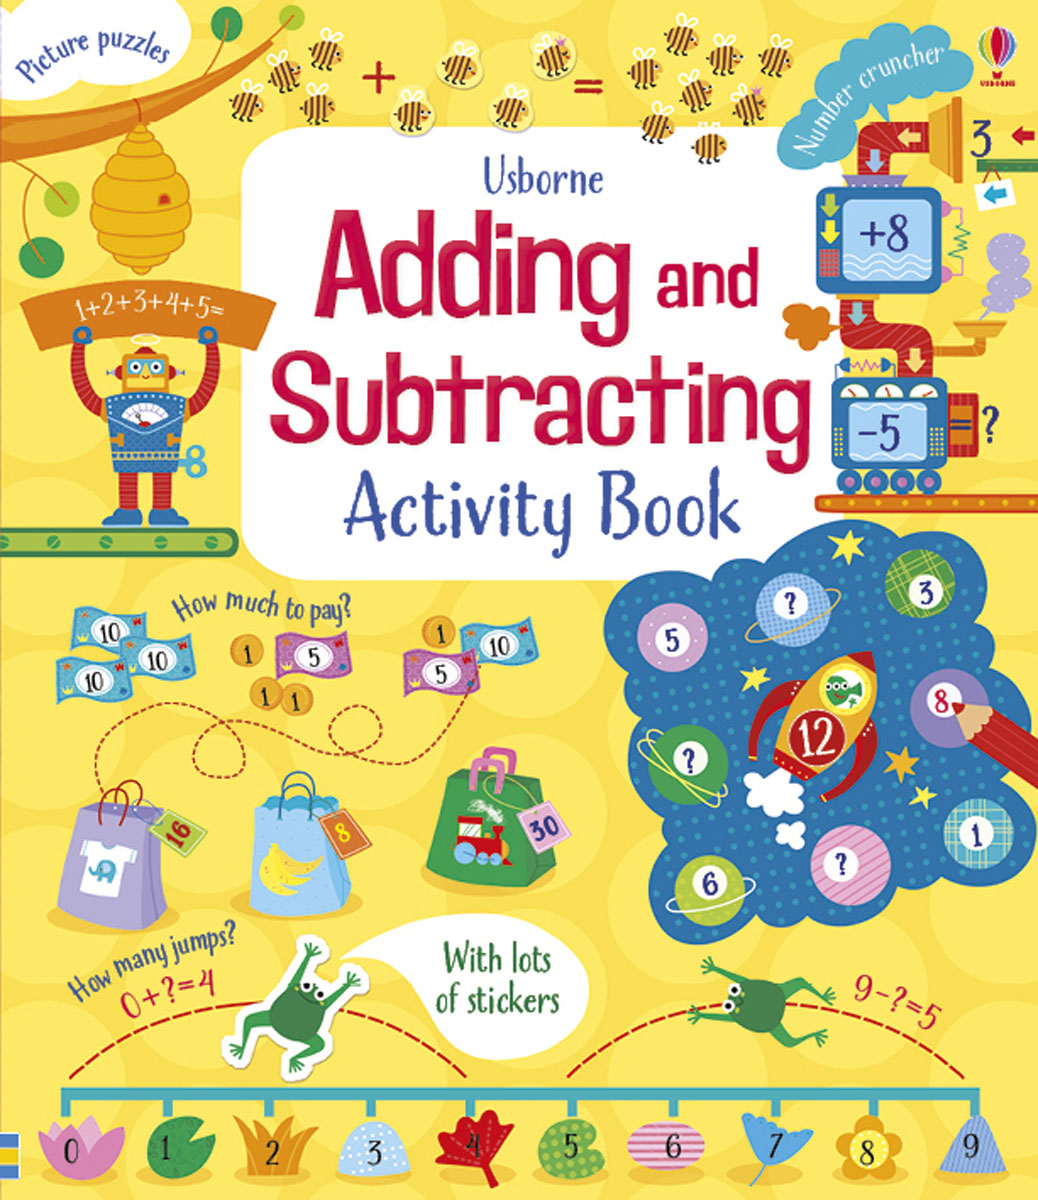 Usborne Adding and Subtracting Activity Book space activity book